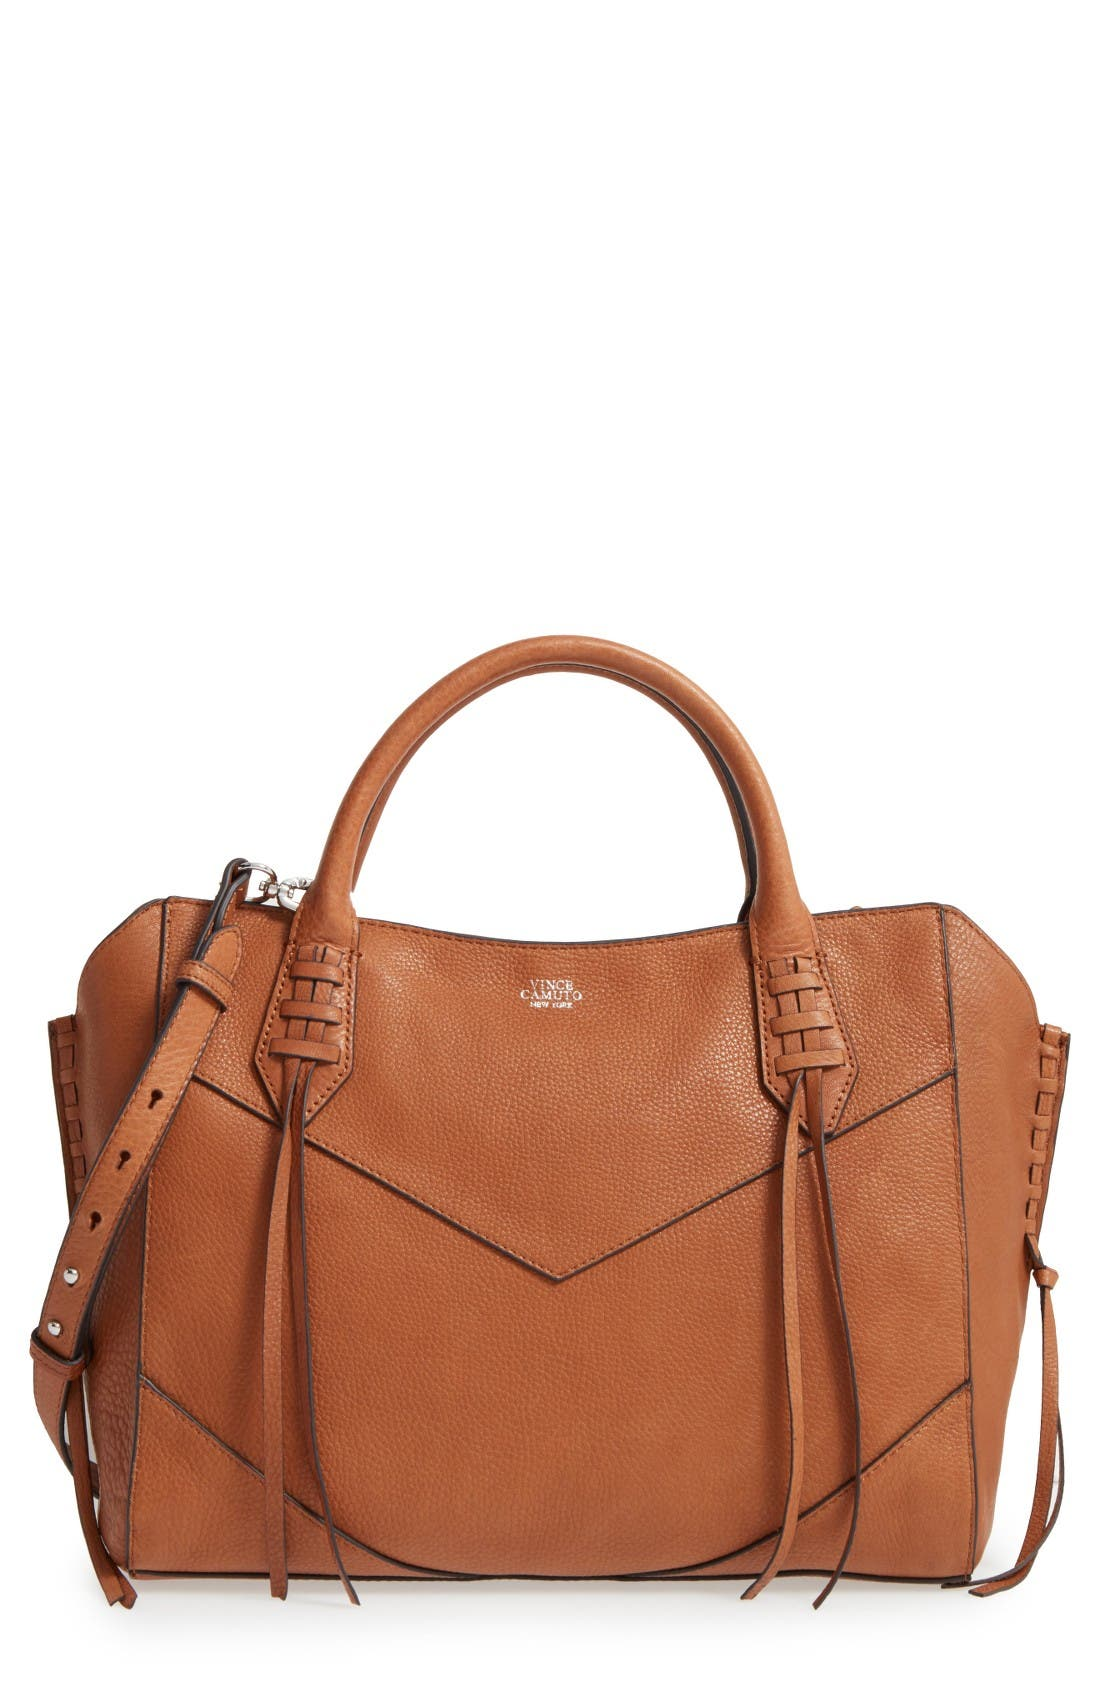 Alternate Image 1 Selected - Vince Camuto Fargo Leather Satchel